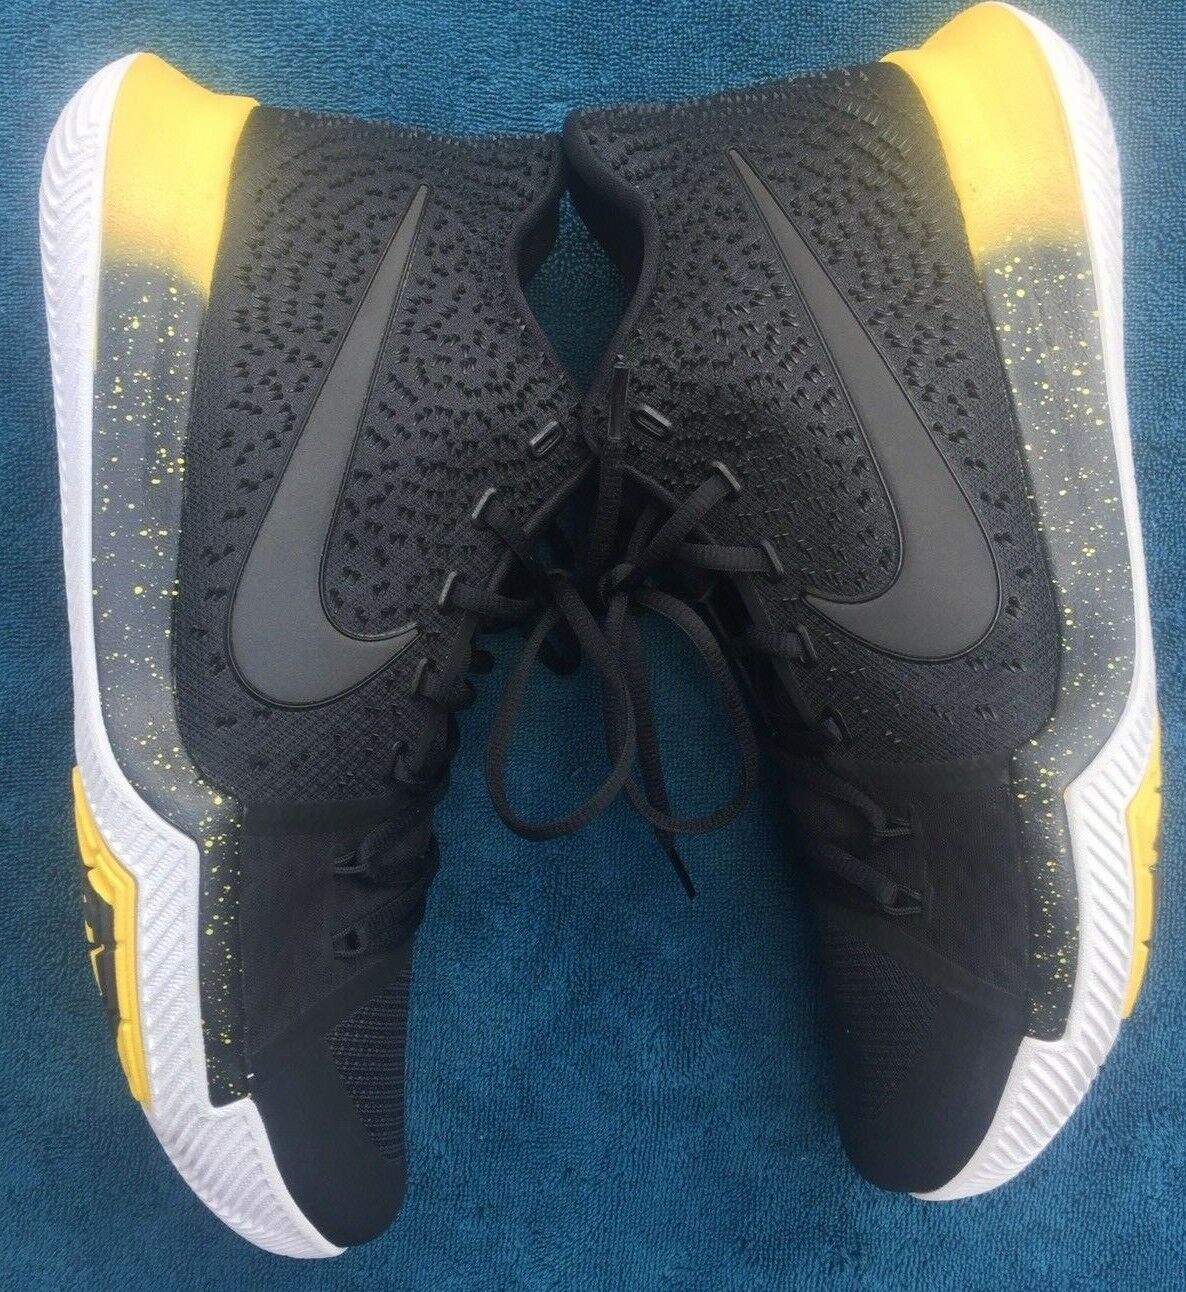 Nike Kyrie Irving 3 Basketball shoes  Mamba  Black Black Black Yellow (852395-901) Size 13.5 4dc2a7